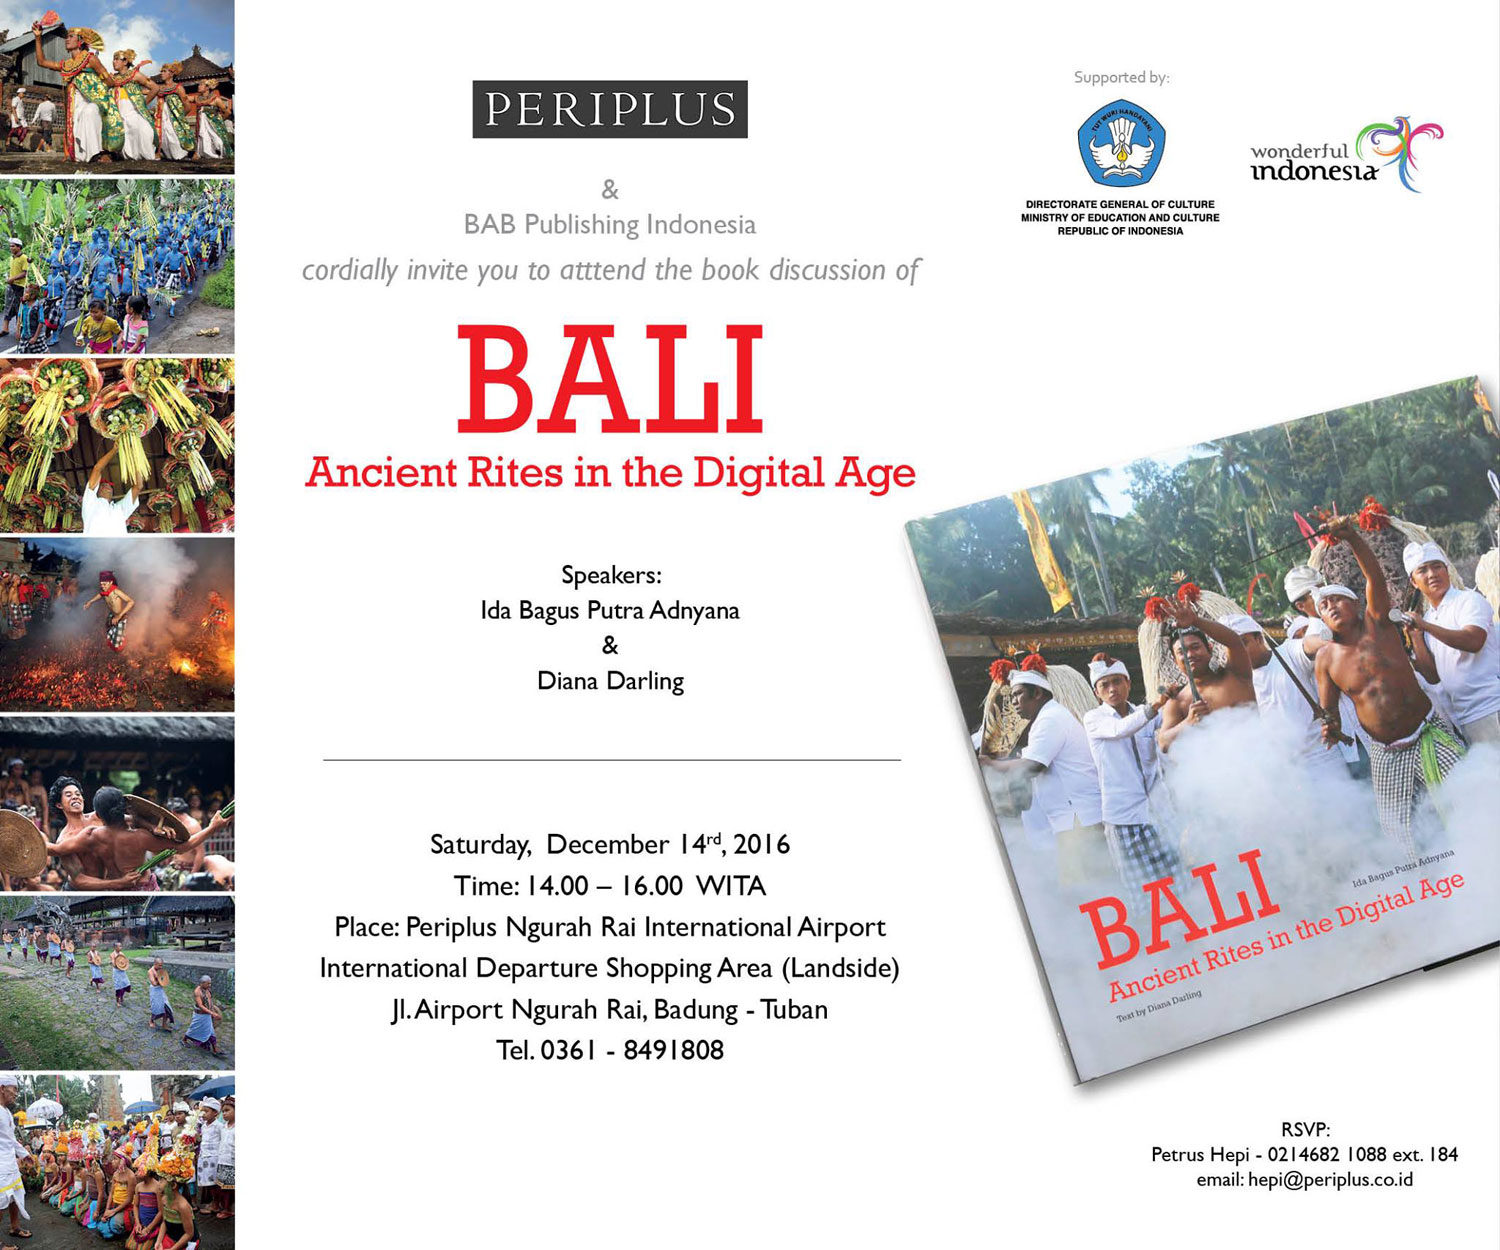 BALI-Ancient-Rites-in-the-Digital-Age